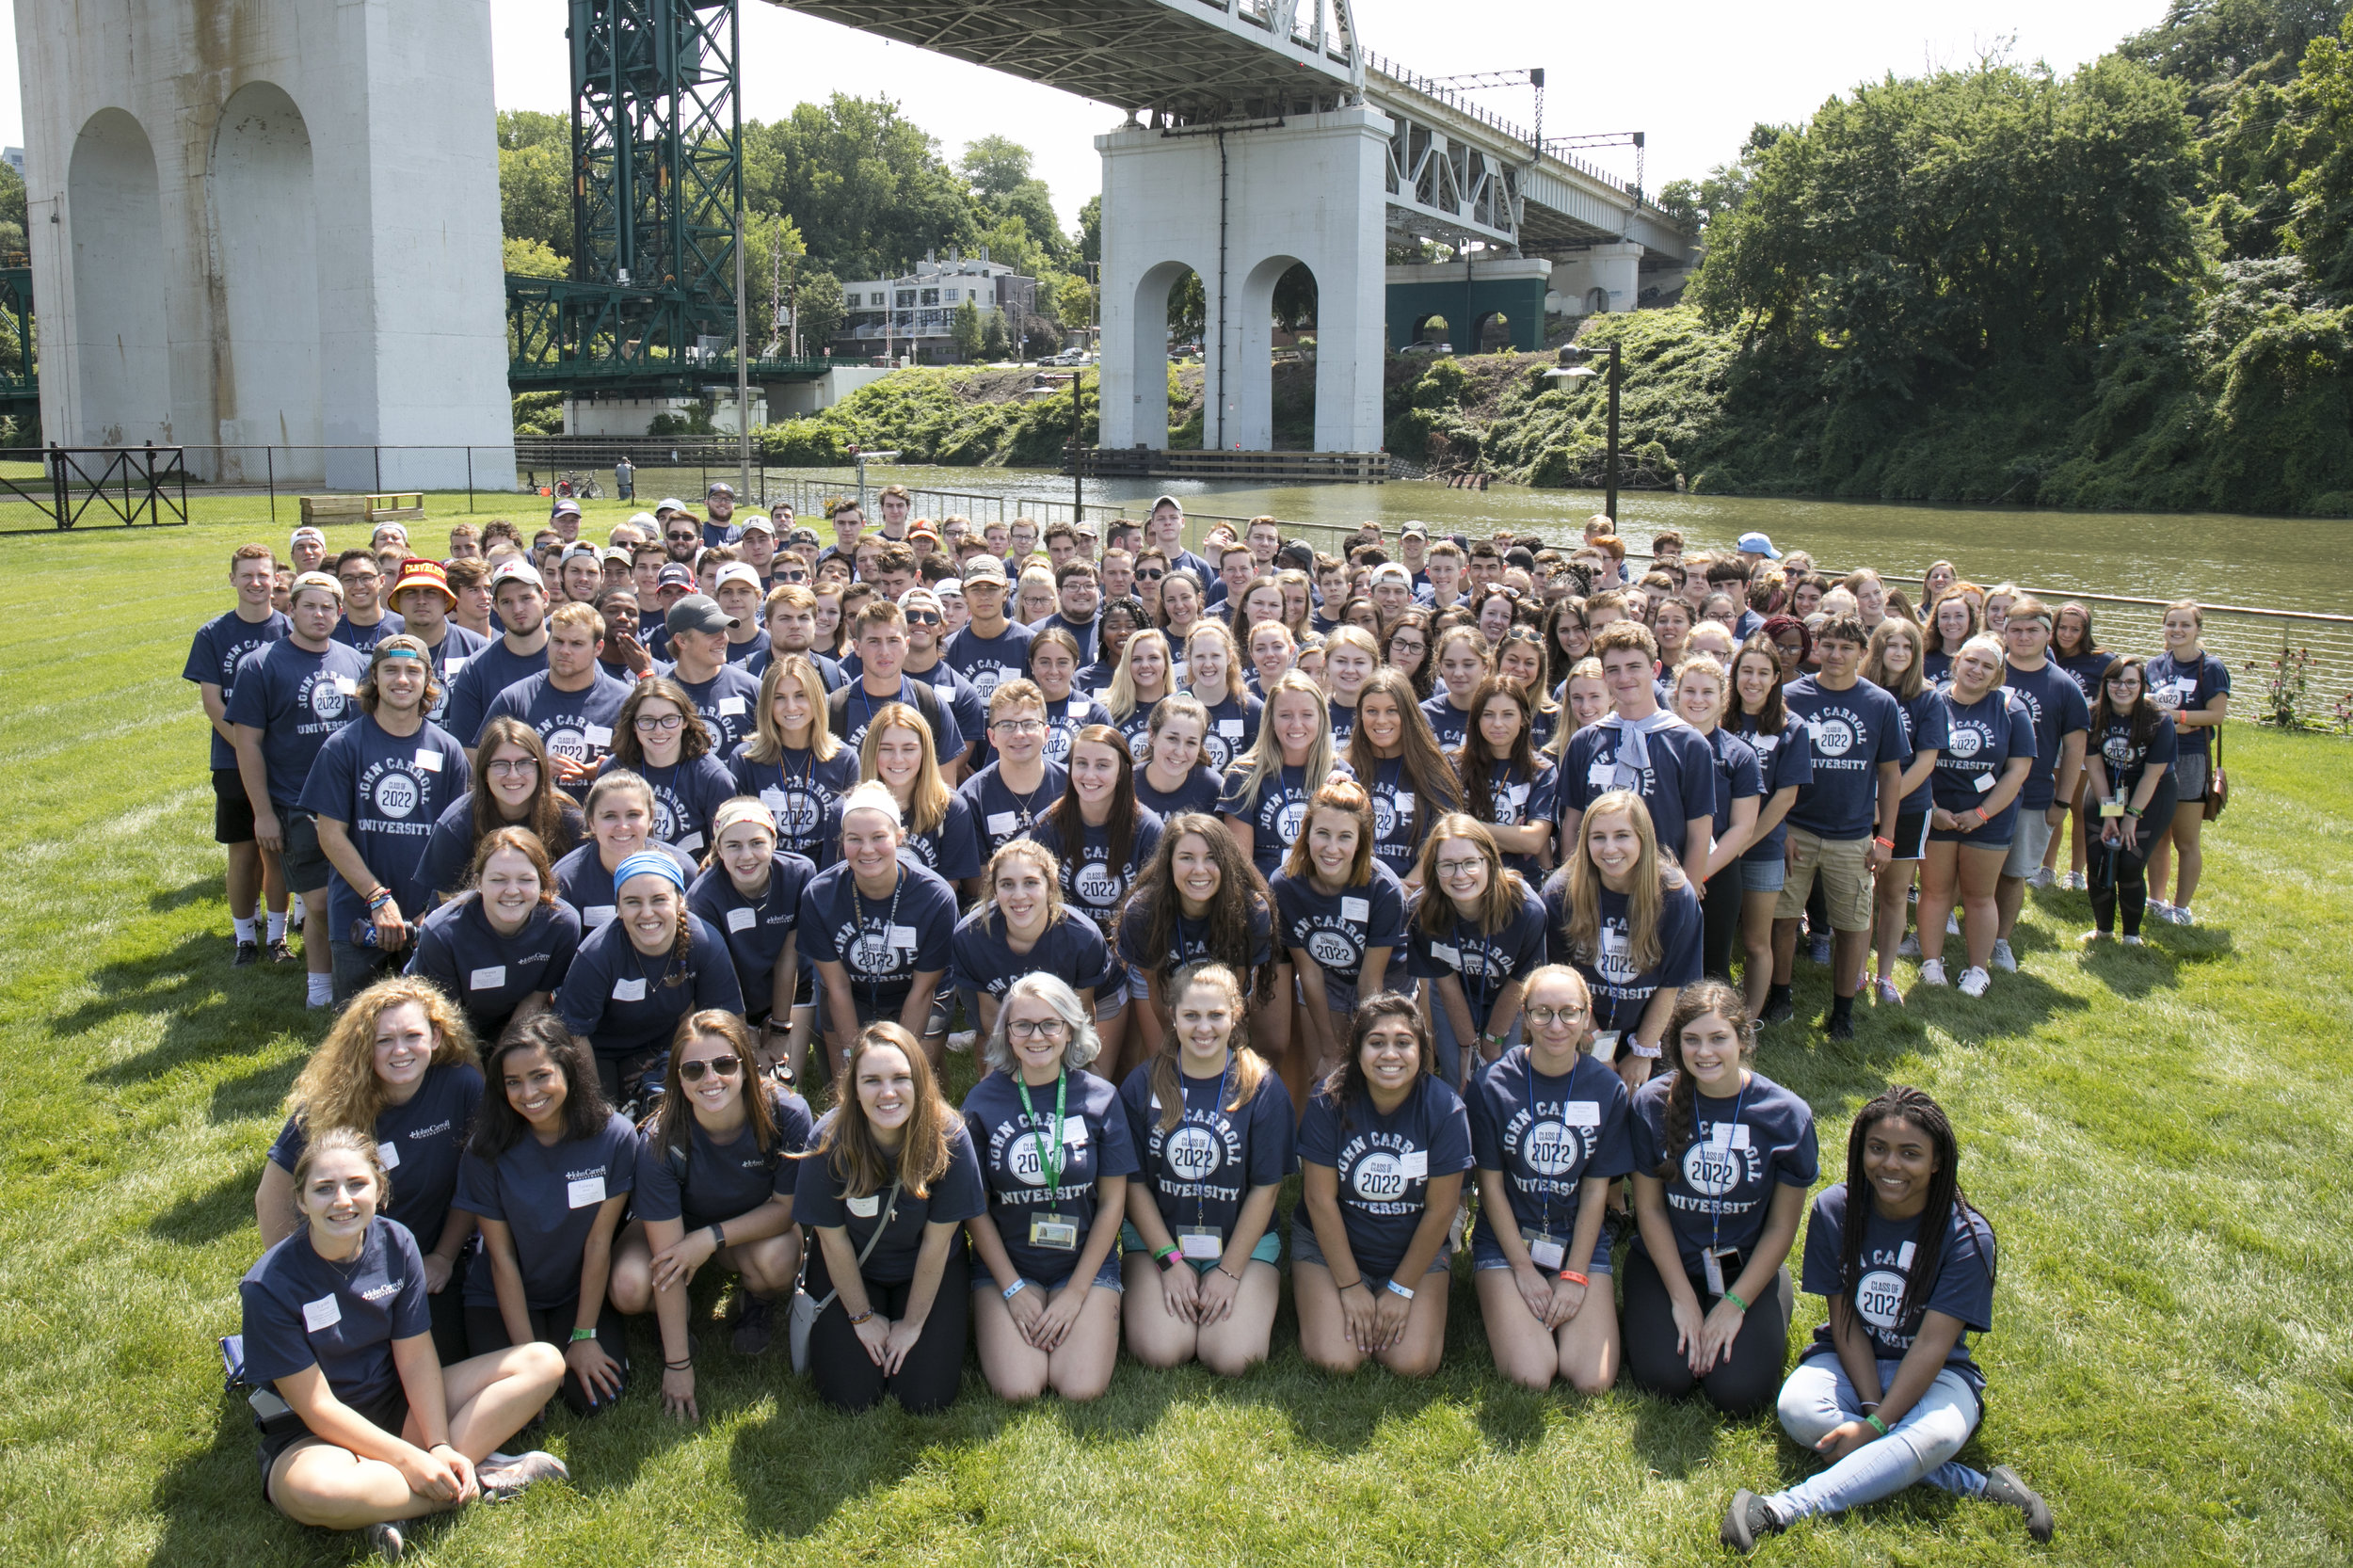 More than 200 new students participated in Meet CLE on August 23, a new service-learning opportunity designed to give John Carroll University's first-year students a stronger appreciation for the Cleveland community (photo by John Carroll University)